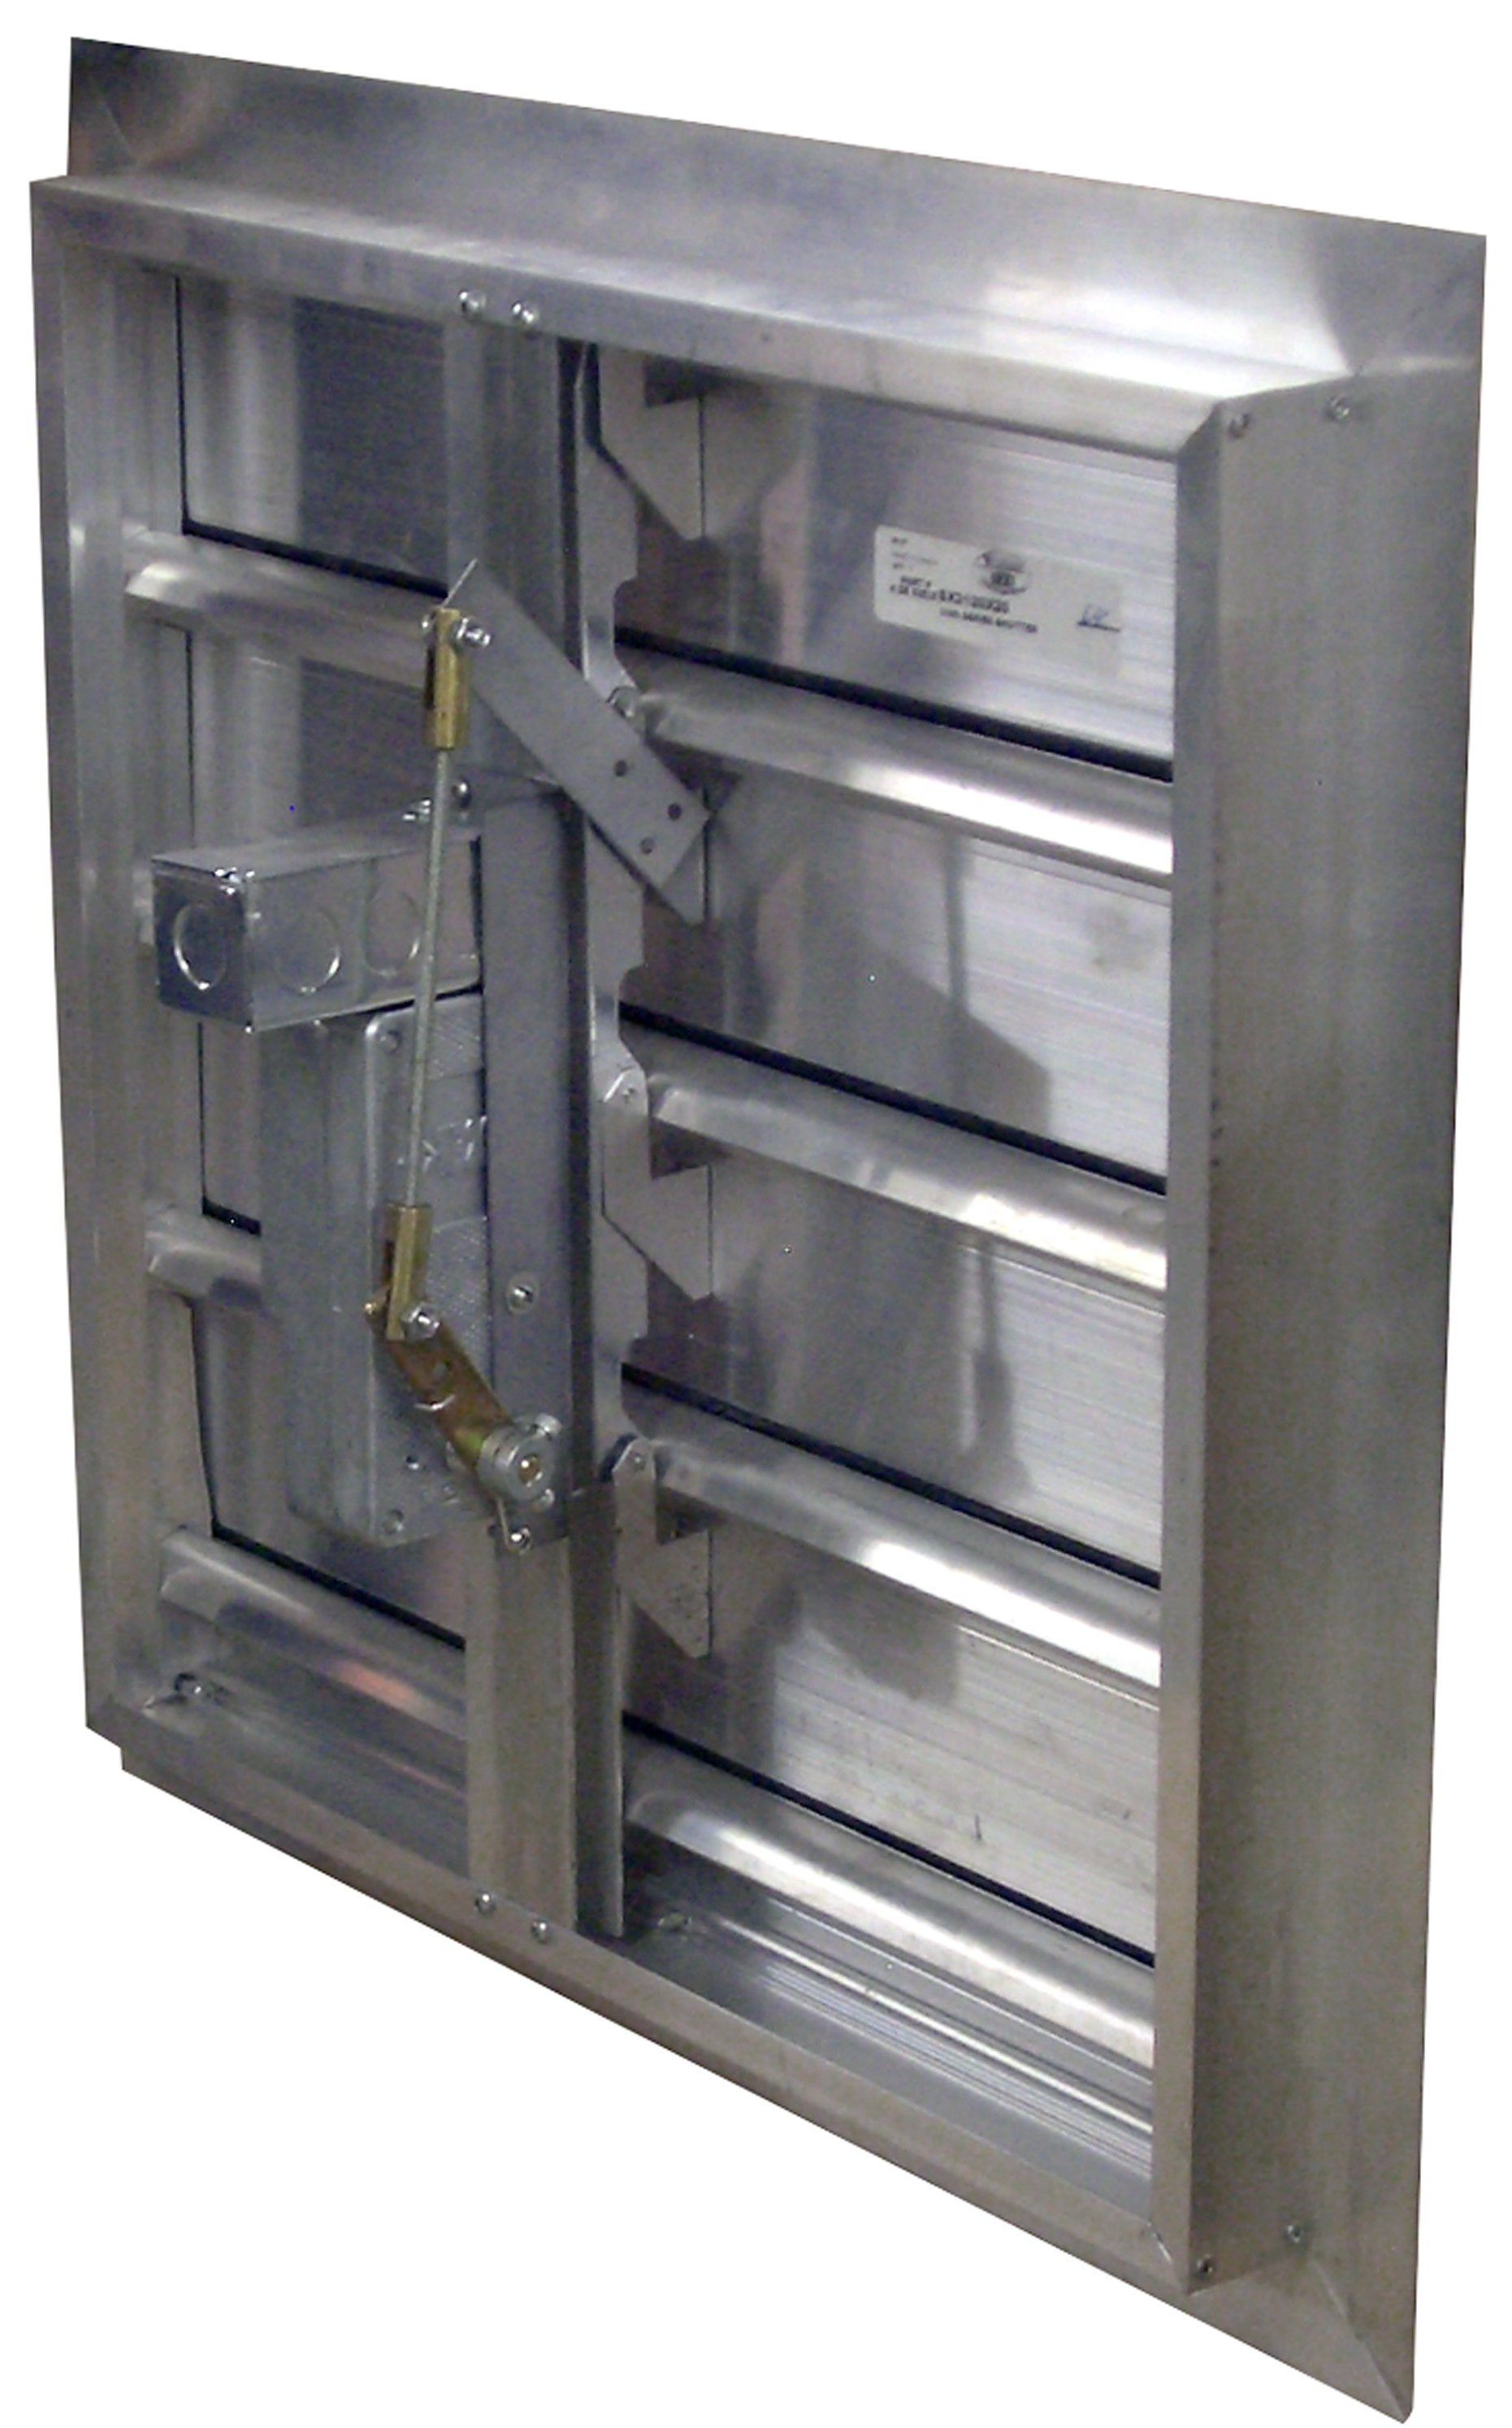 Motorized Dampers Exhaust Louvers Shutters Weather